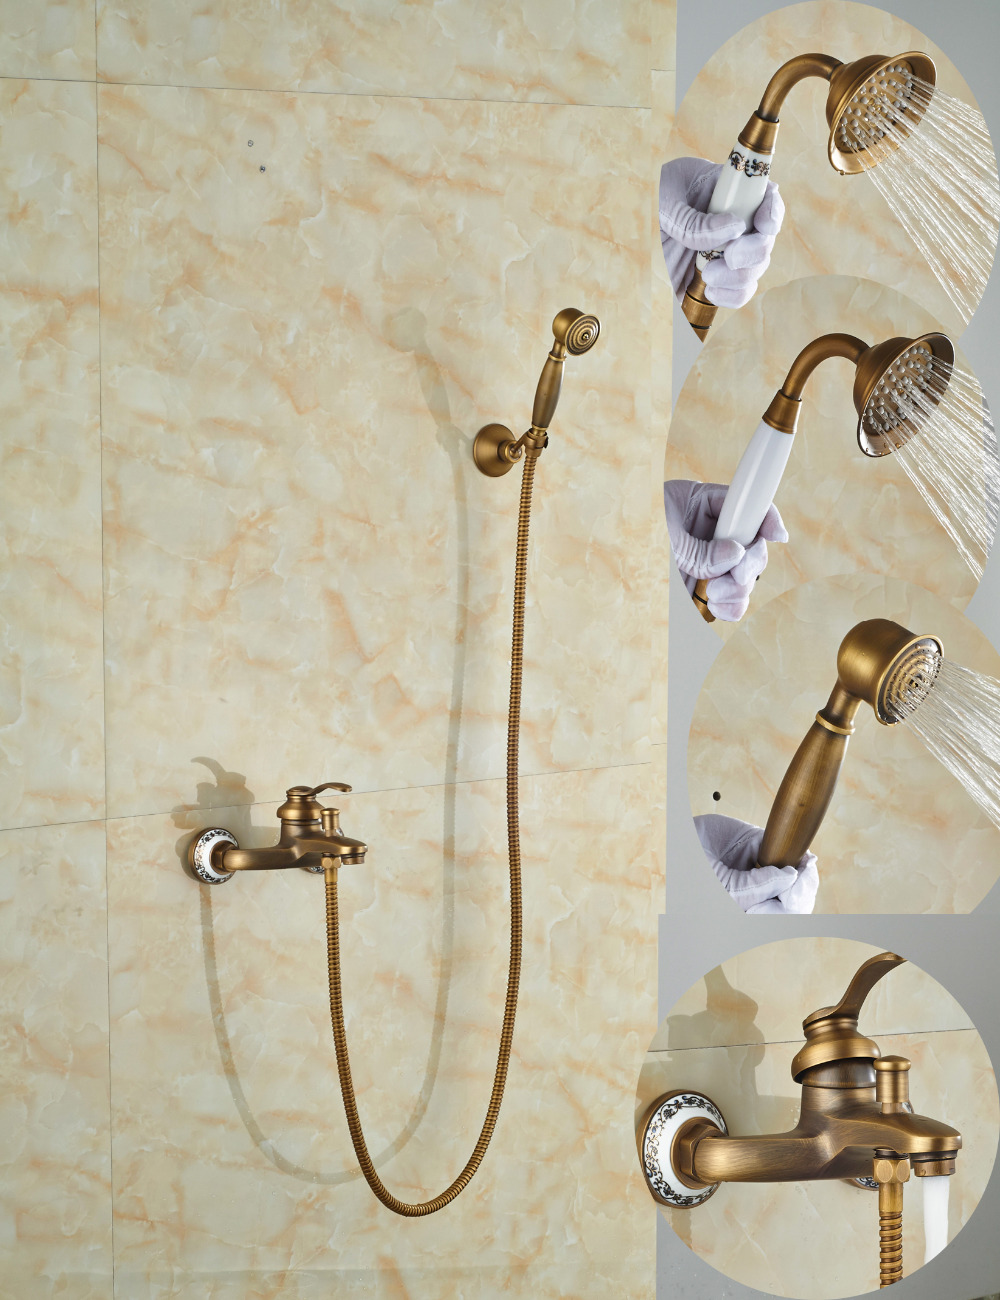 Wholesale And Retail Promotion Luxury Antique Brass Bathroom Tub Faucet Wall Mounted W/  ...